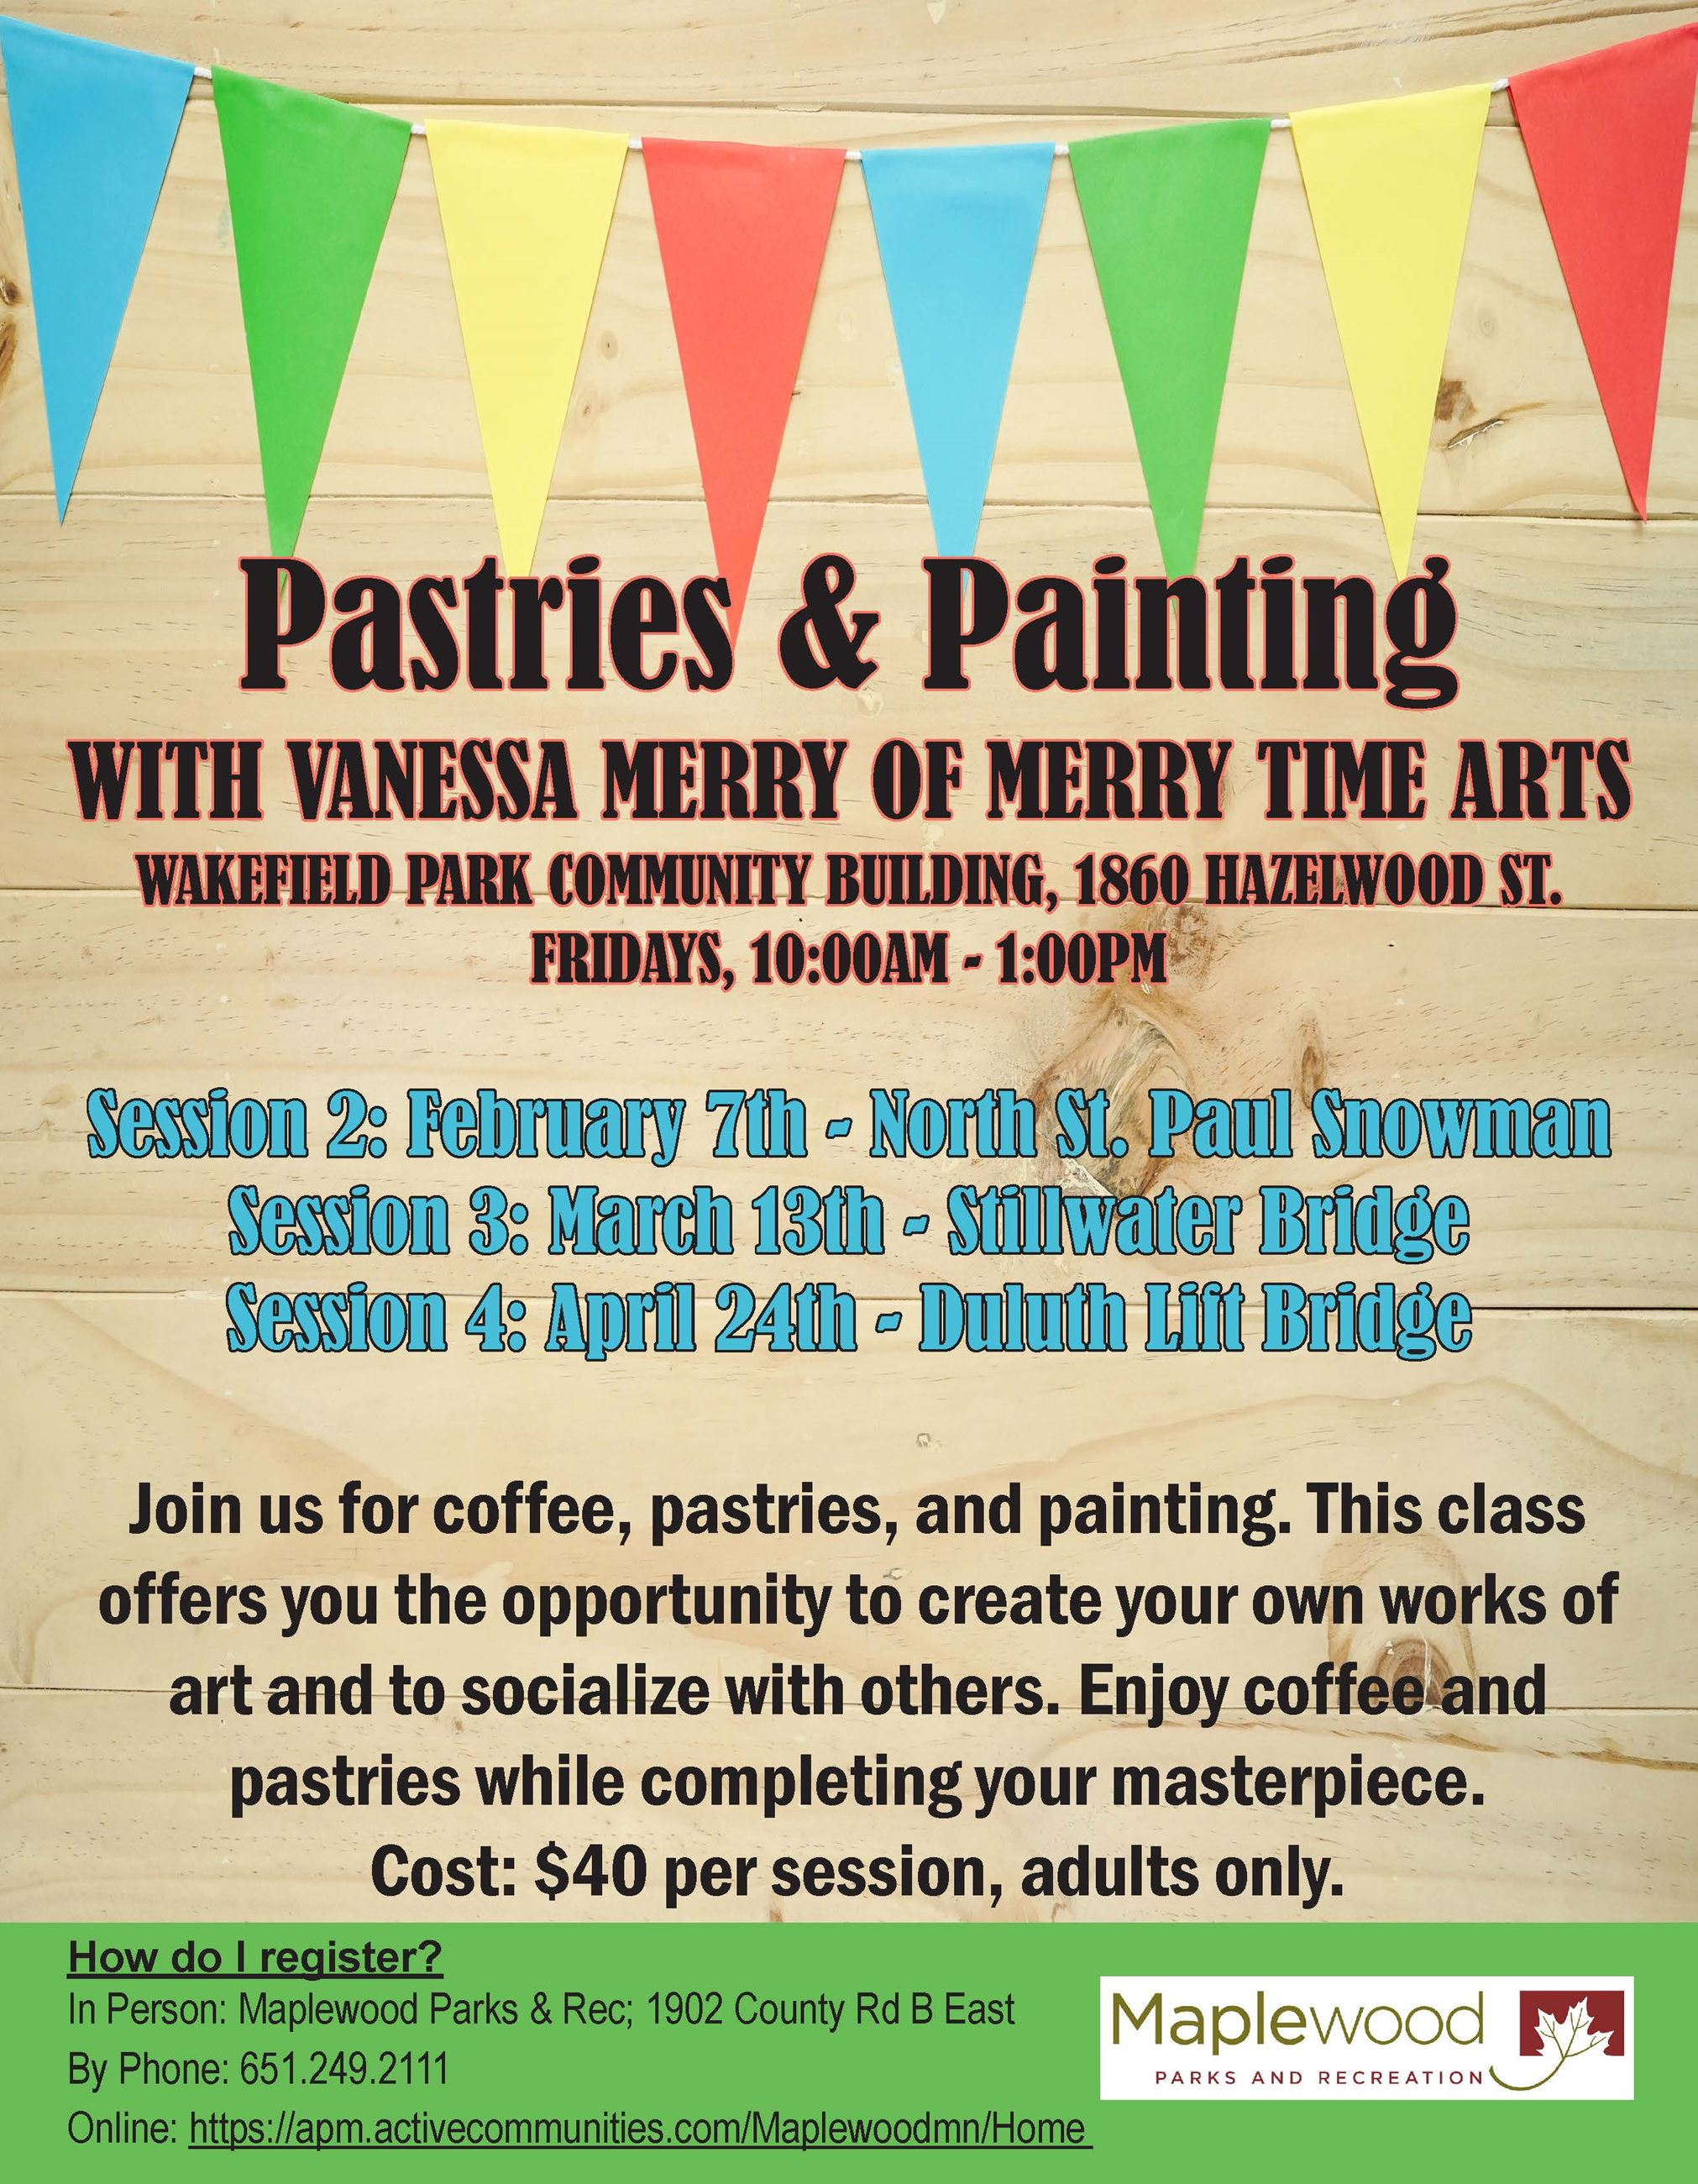 Pastries & Painting-winter